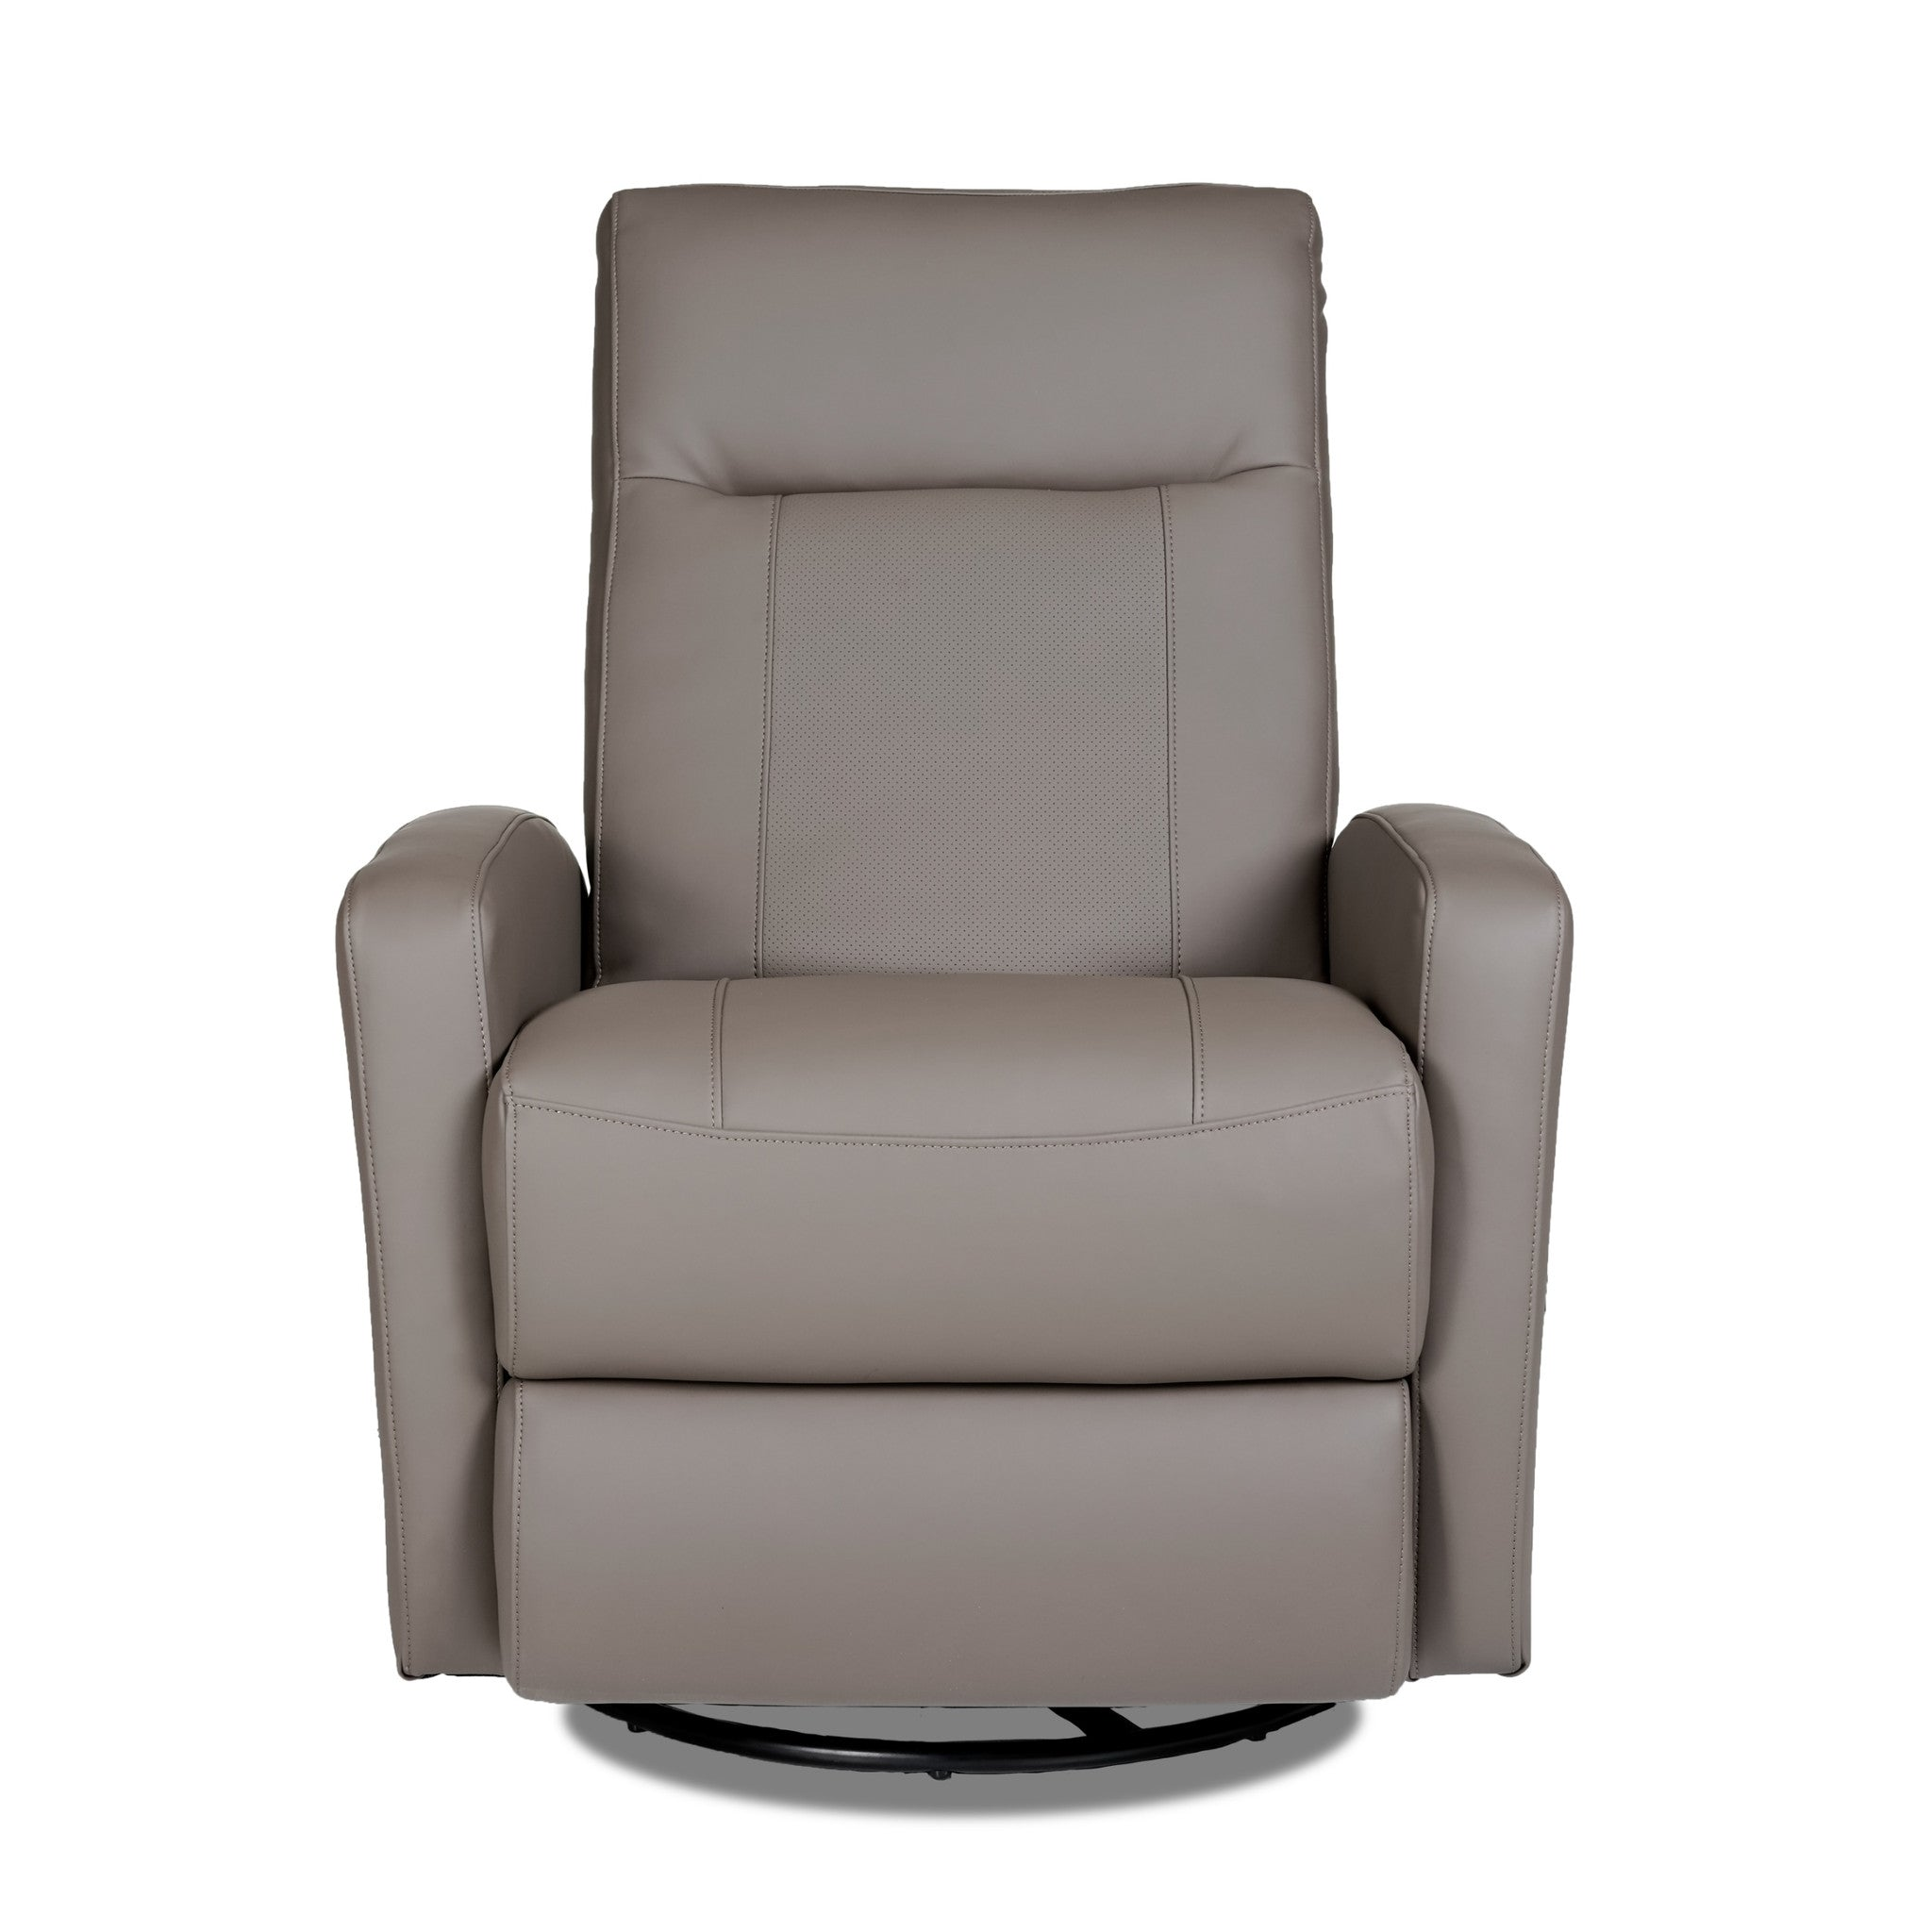 STEFAN SWIVEL GLIDER RECLINER - Samurai Quarry